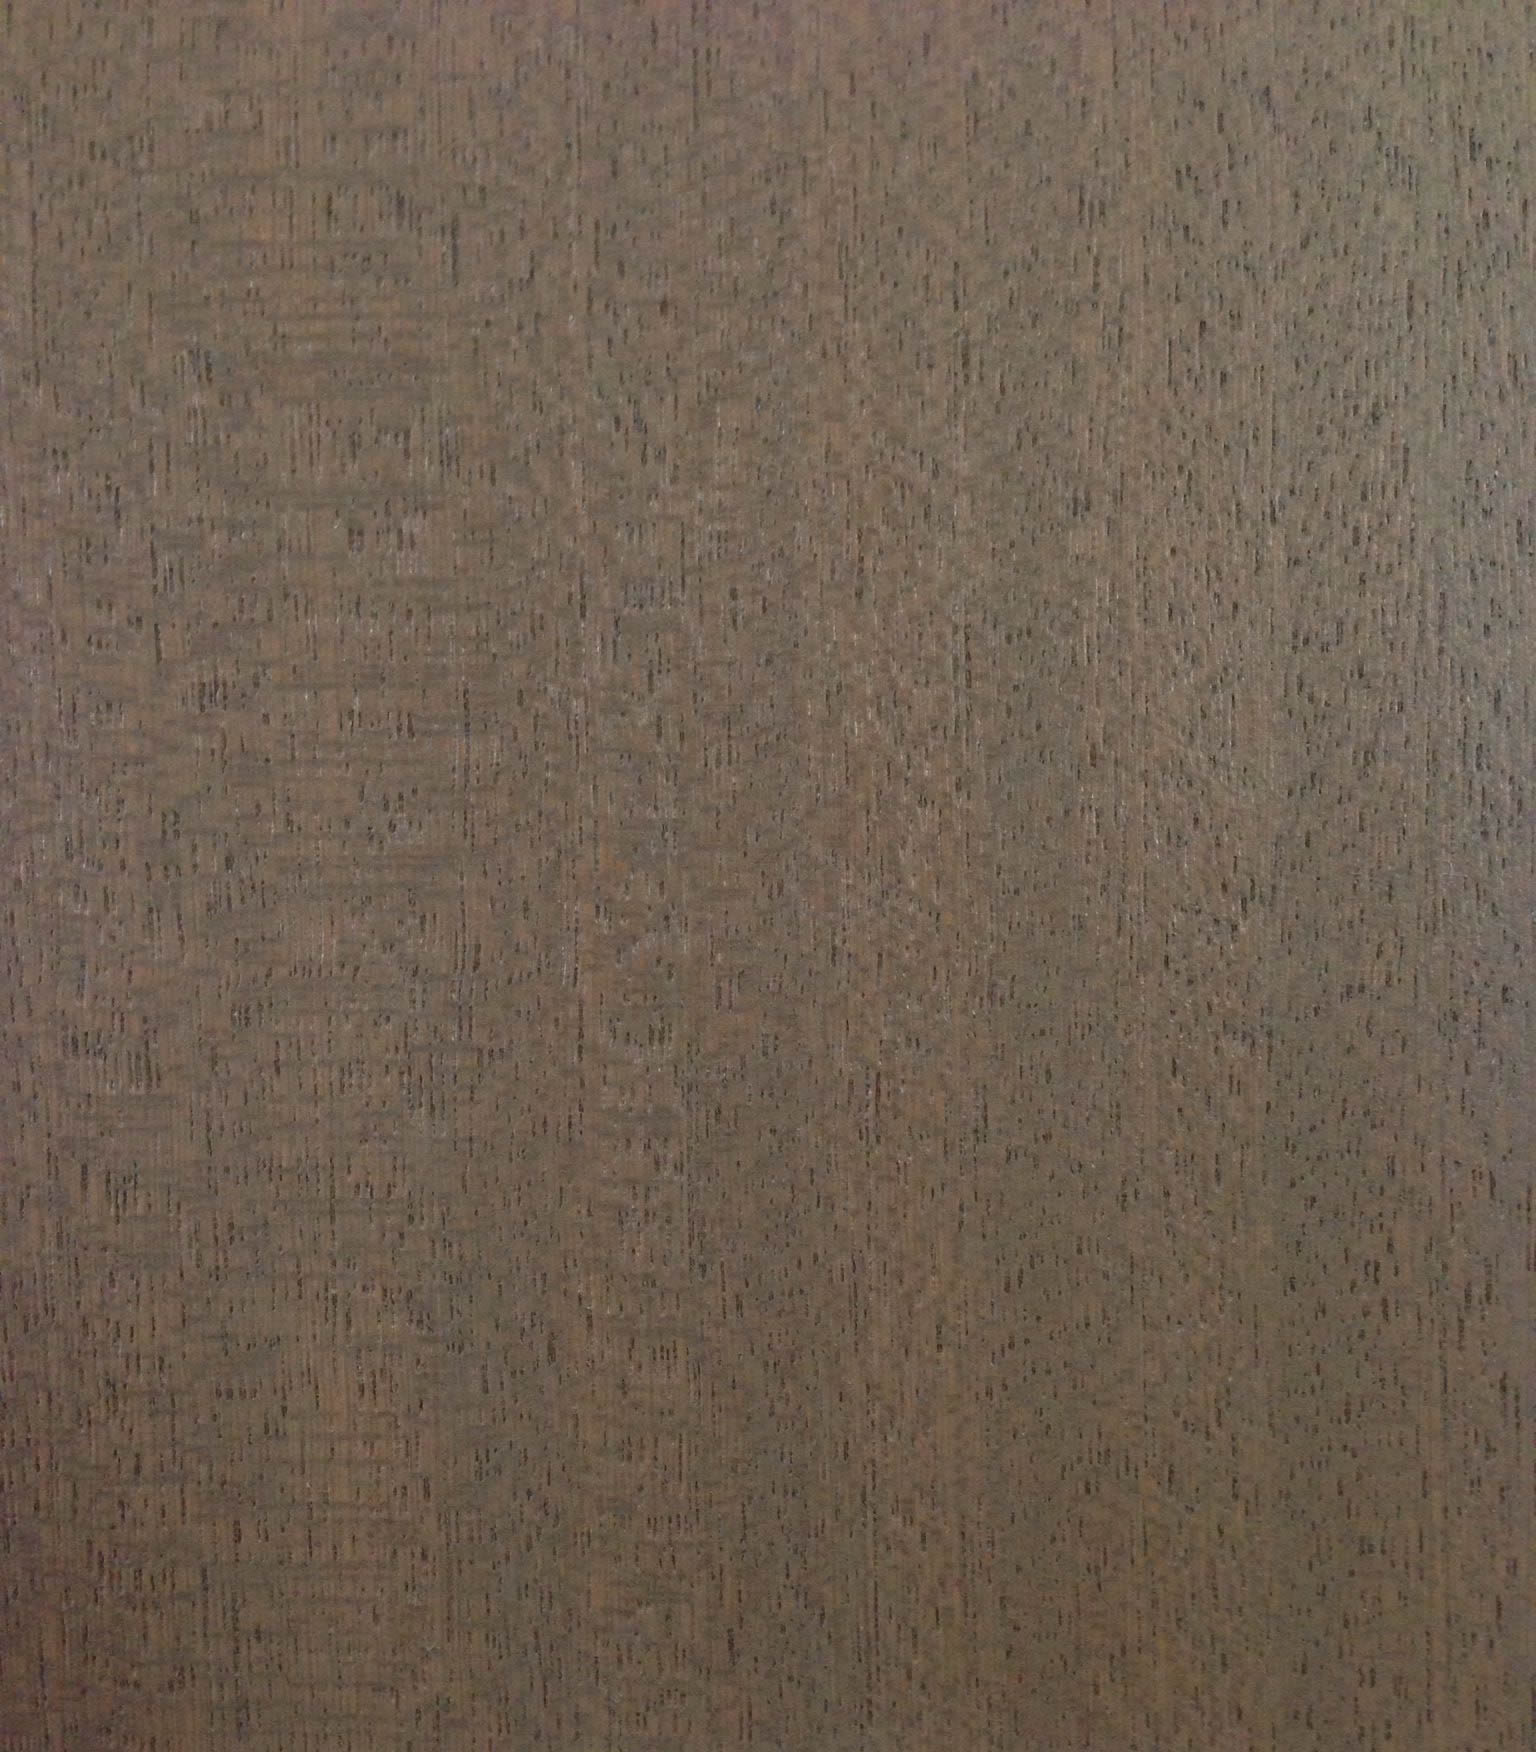 Sapele QC Stained 090712